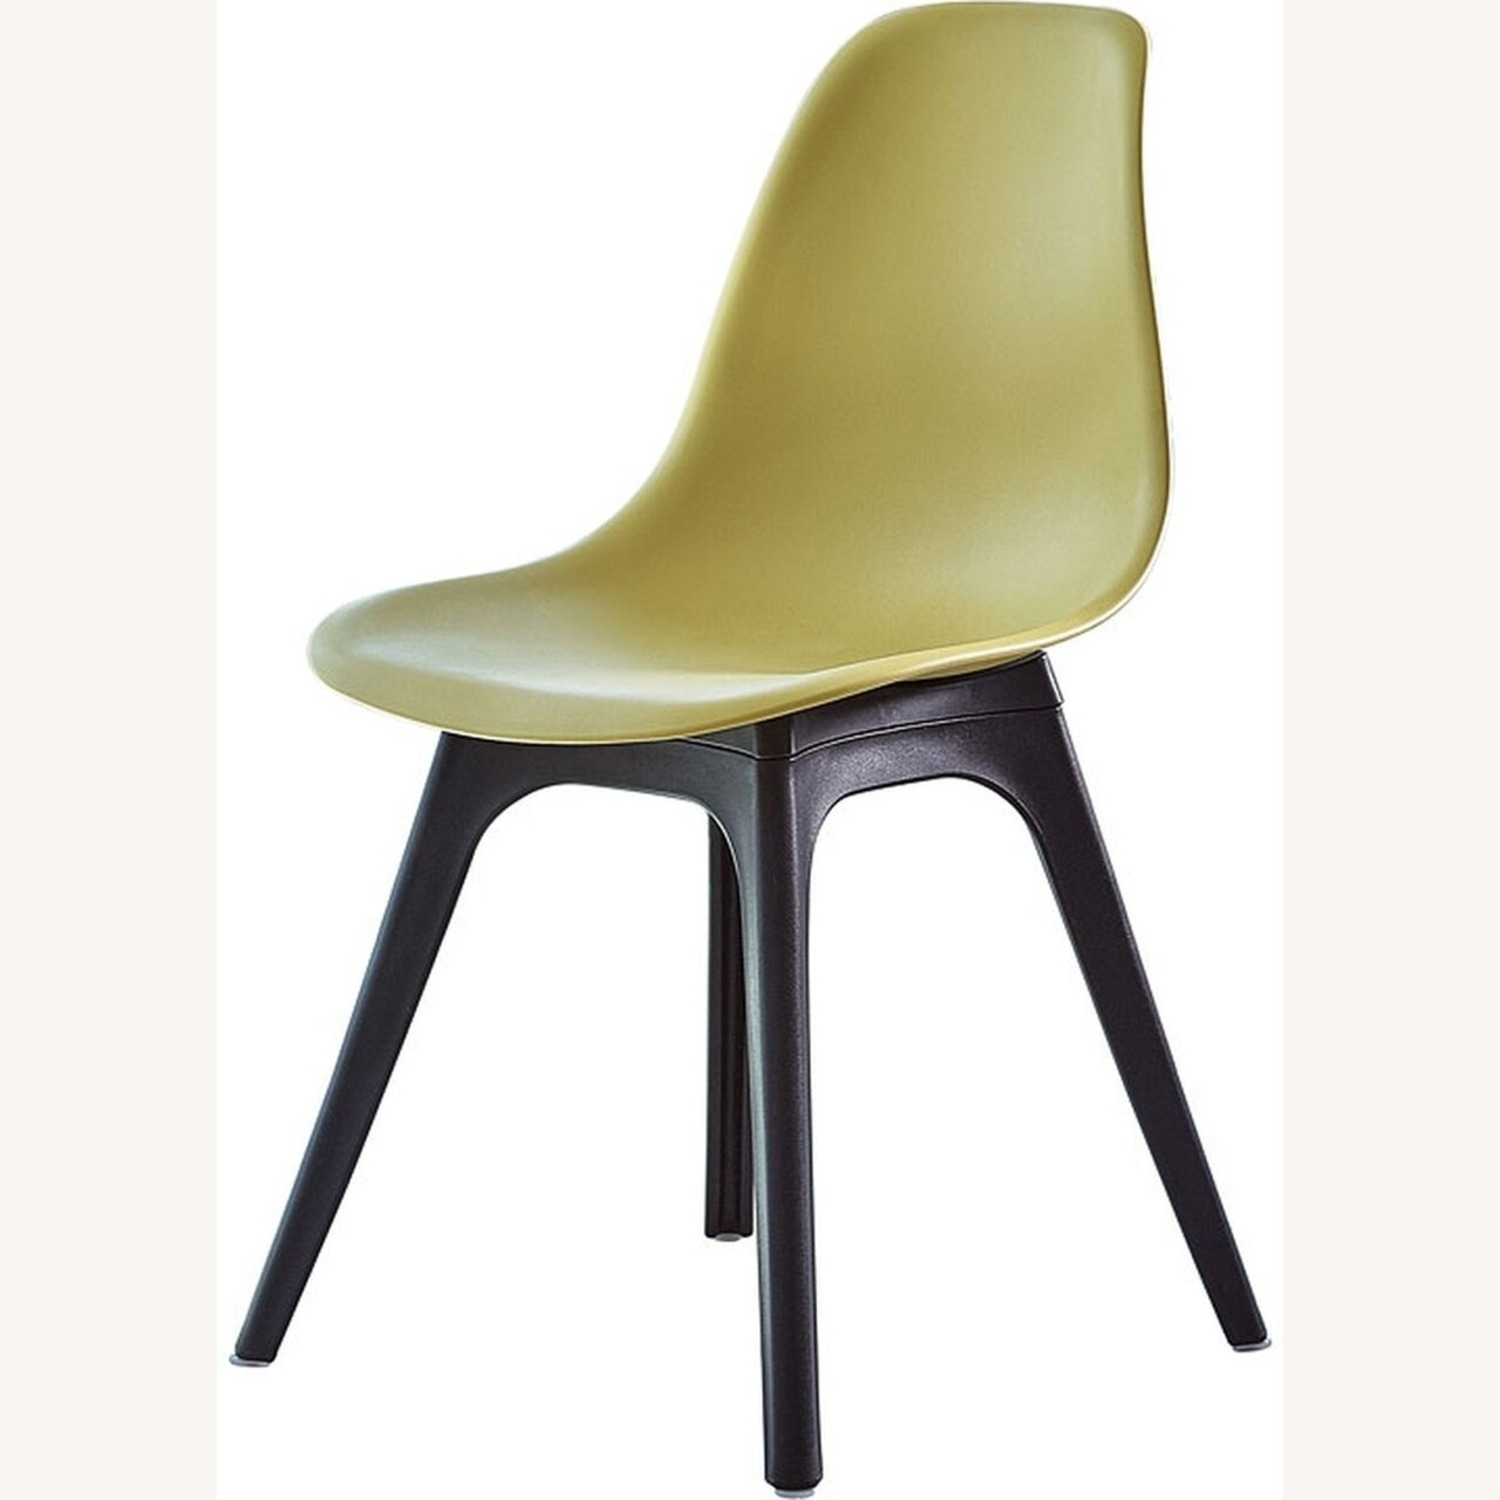 Side Chair In Lemon Color Finish - image-0